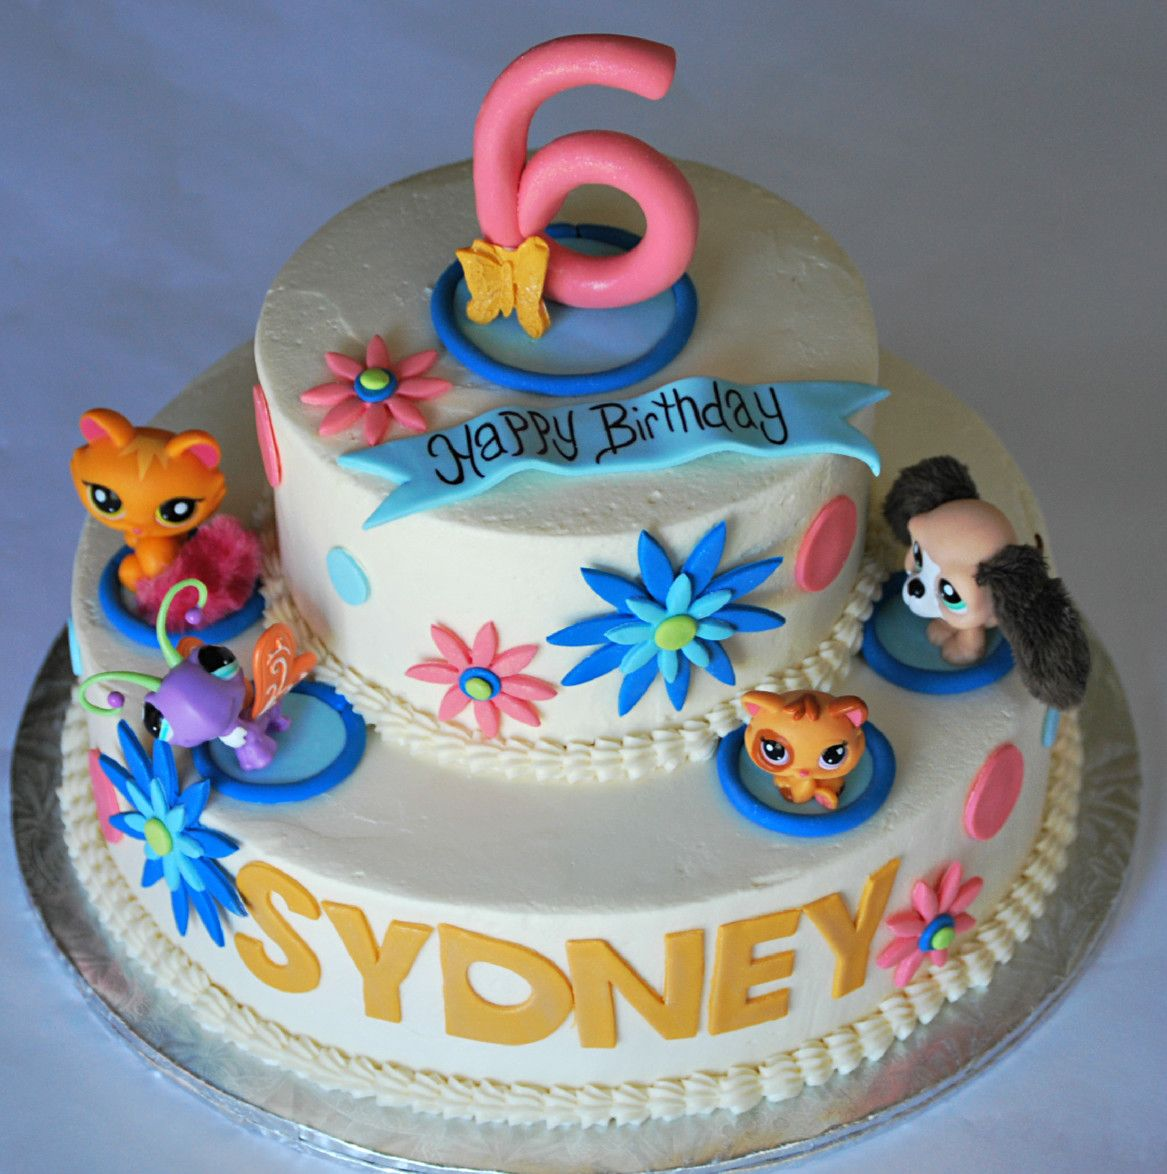 littlest pet shop cake with furry dogkittenbutterfly and cat